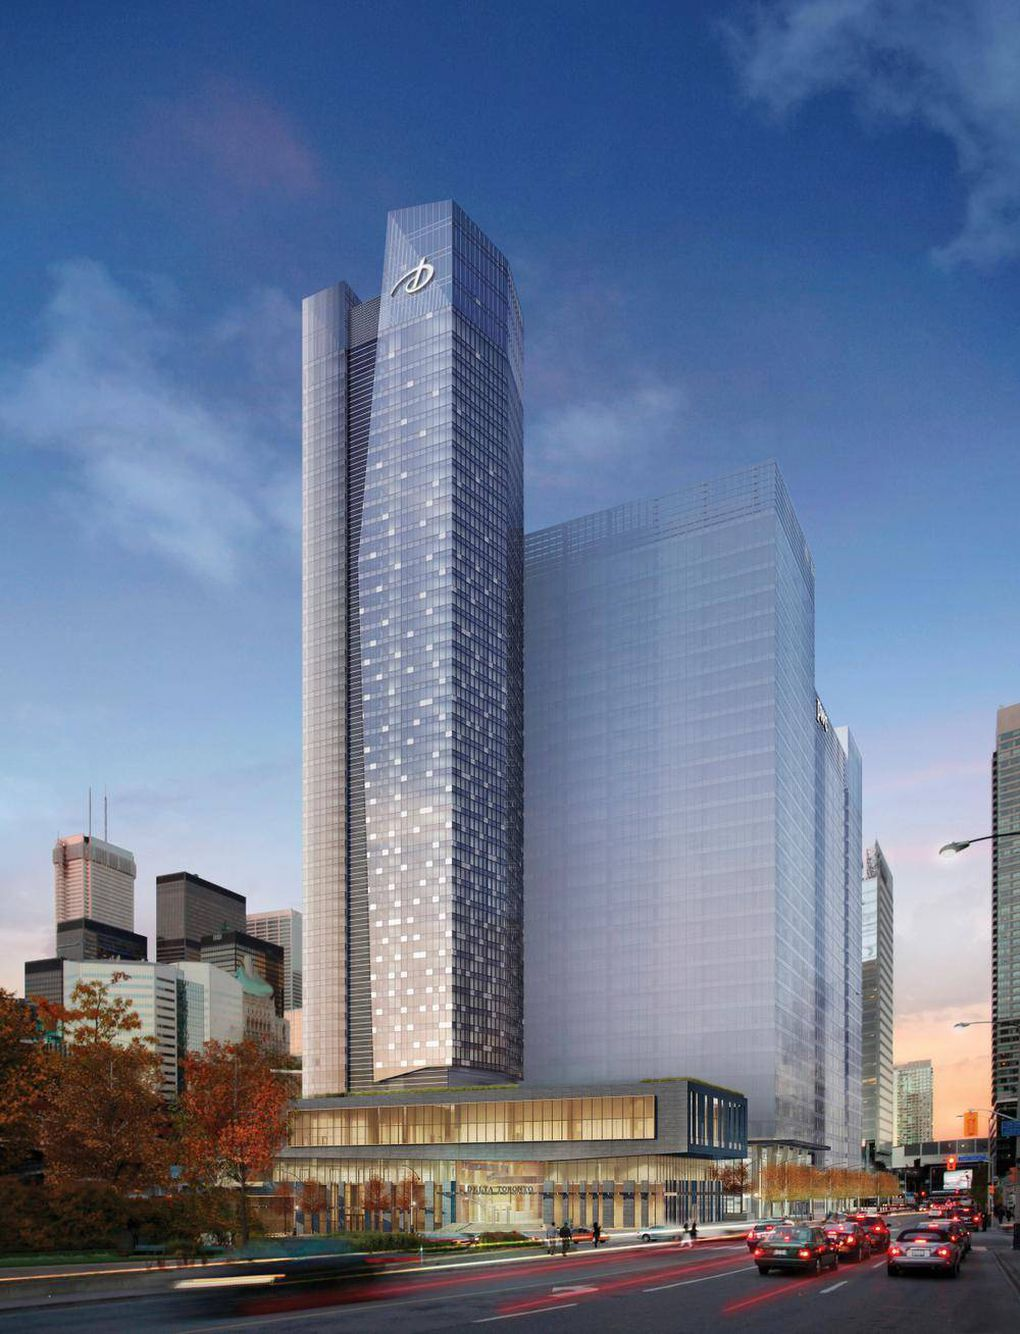 Delta S New Flagship Hotel At Centre Ice In Toronto The Globe